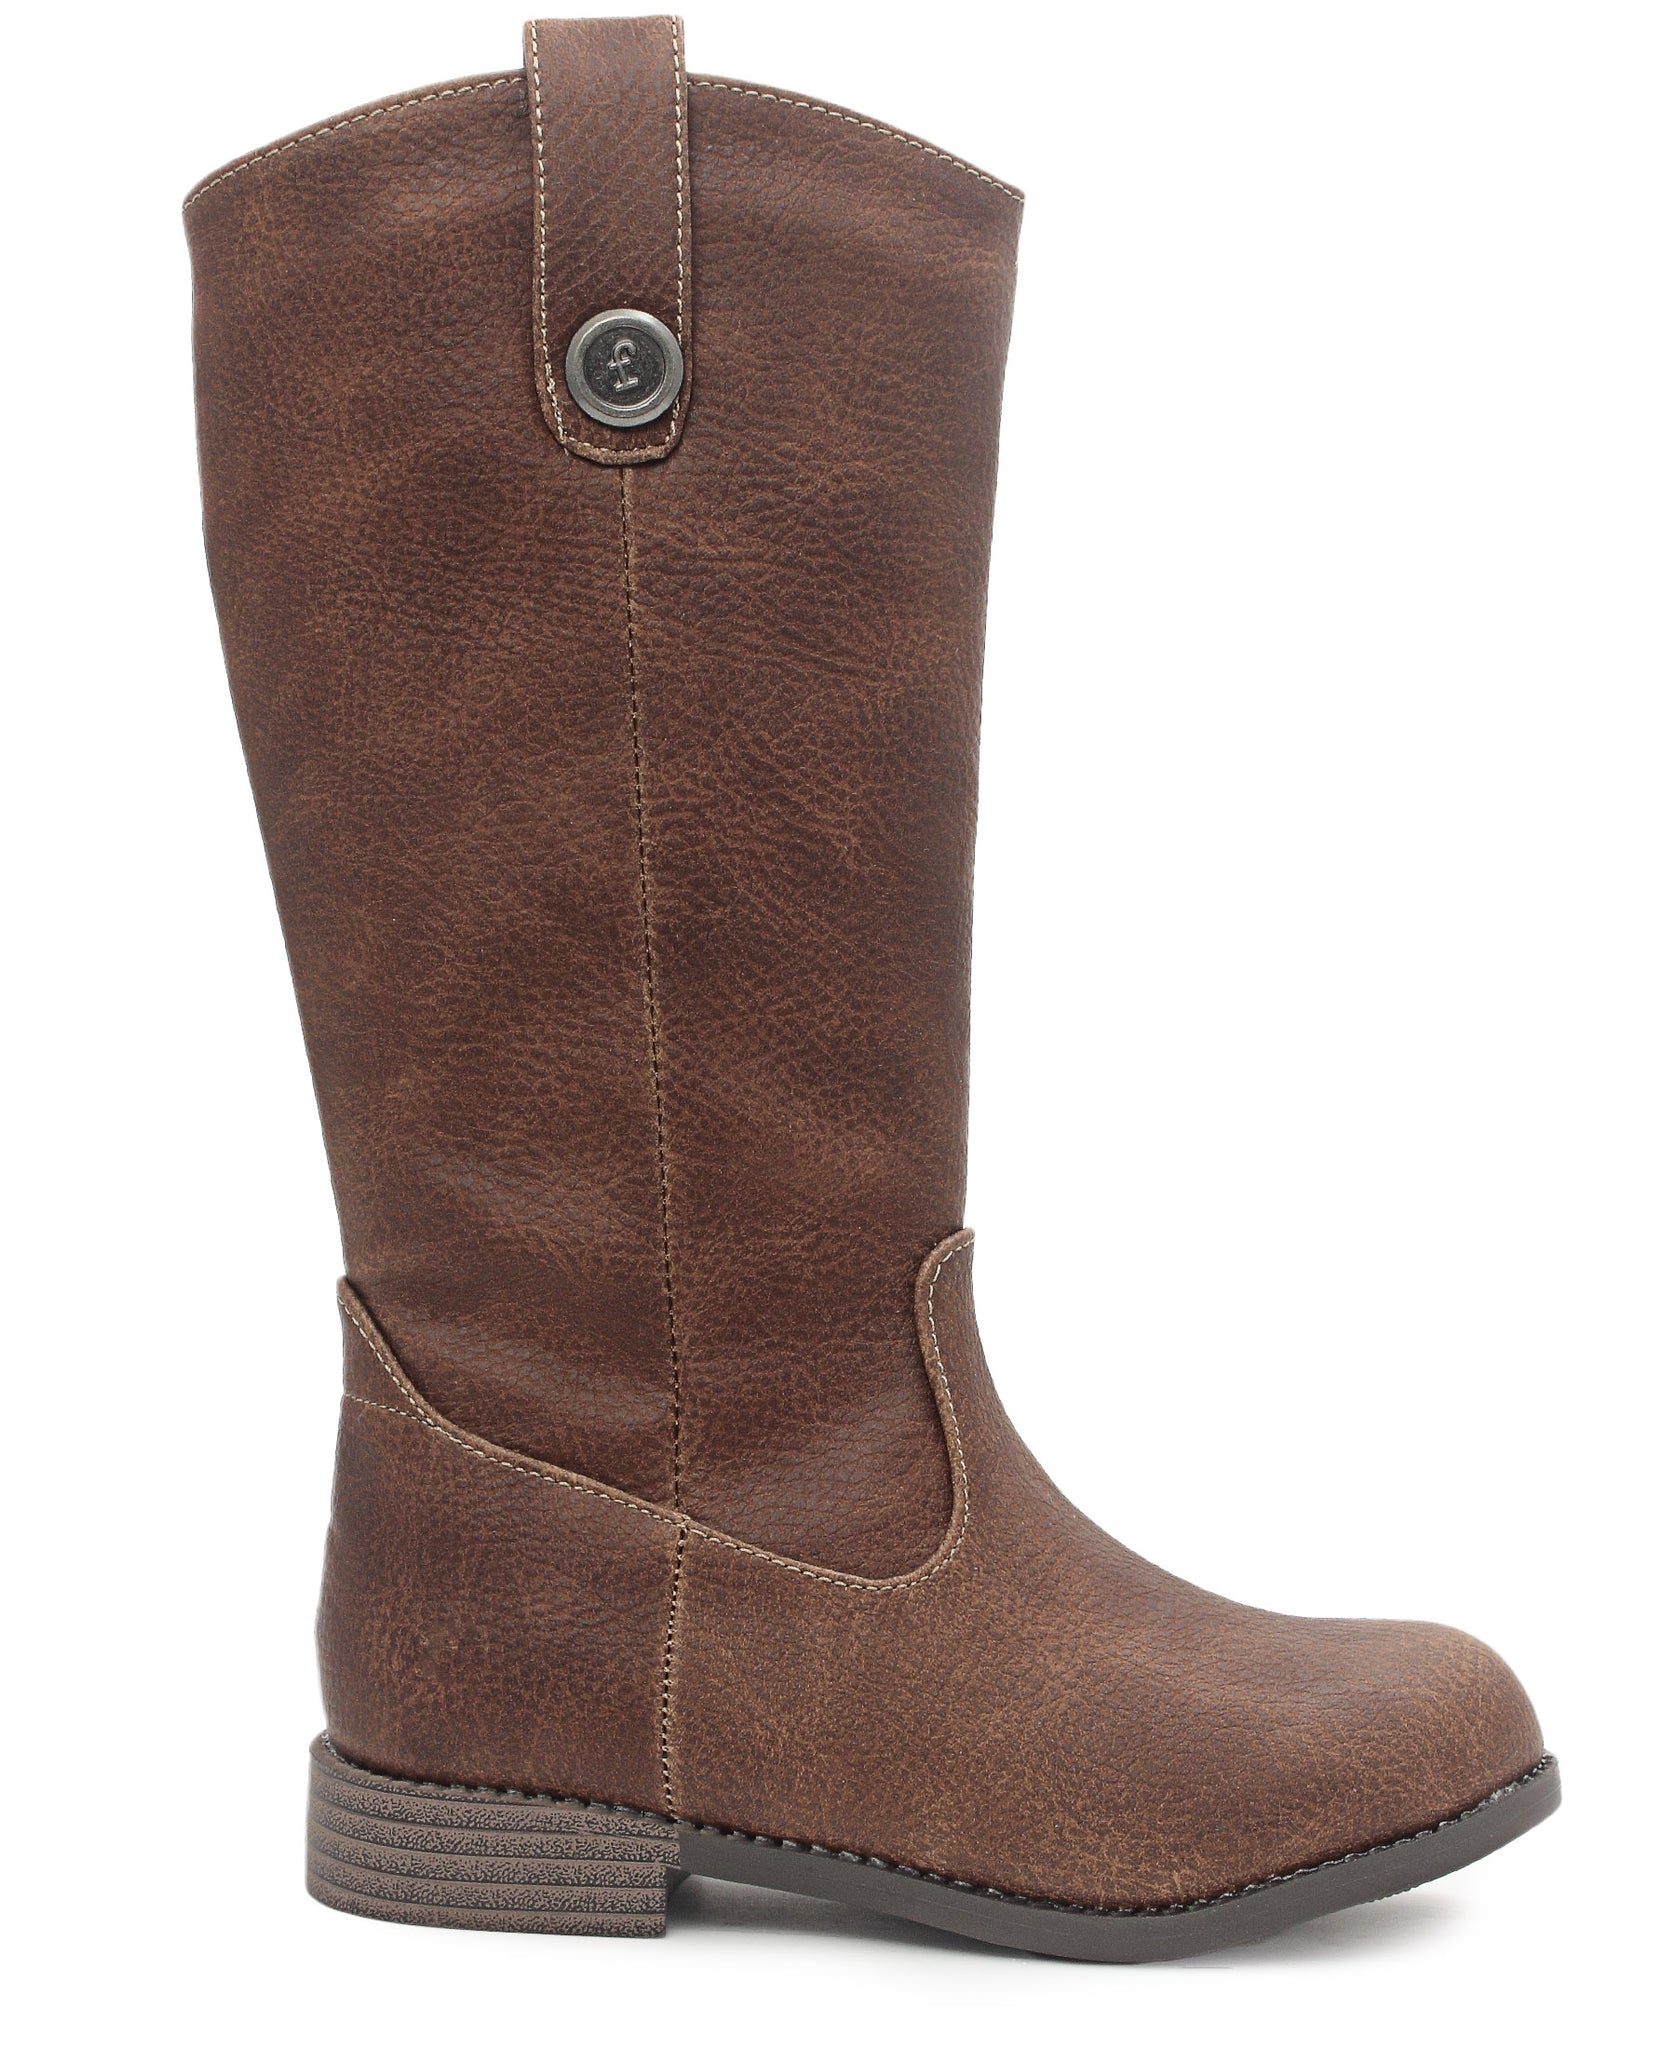 Girls Long Boots - Brown